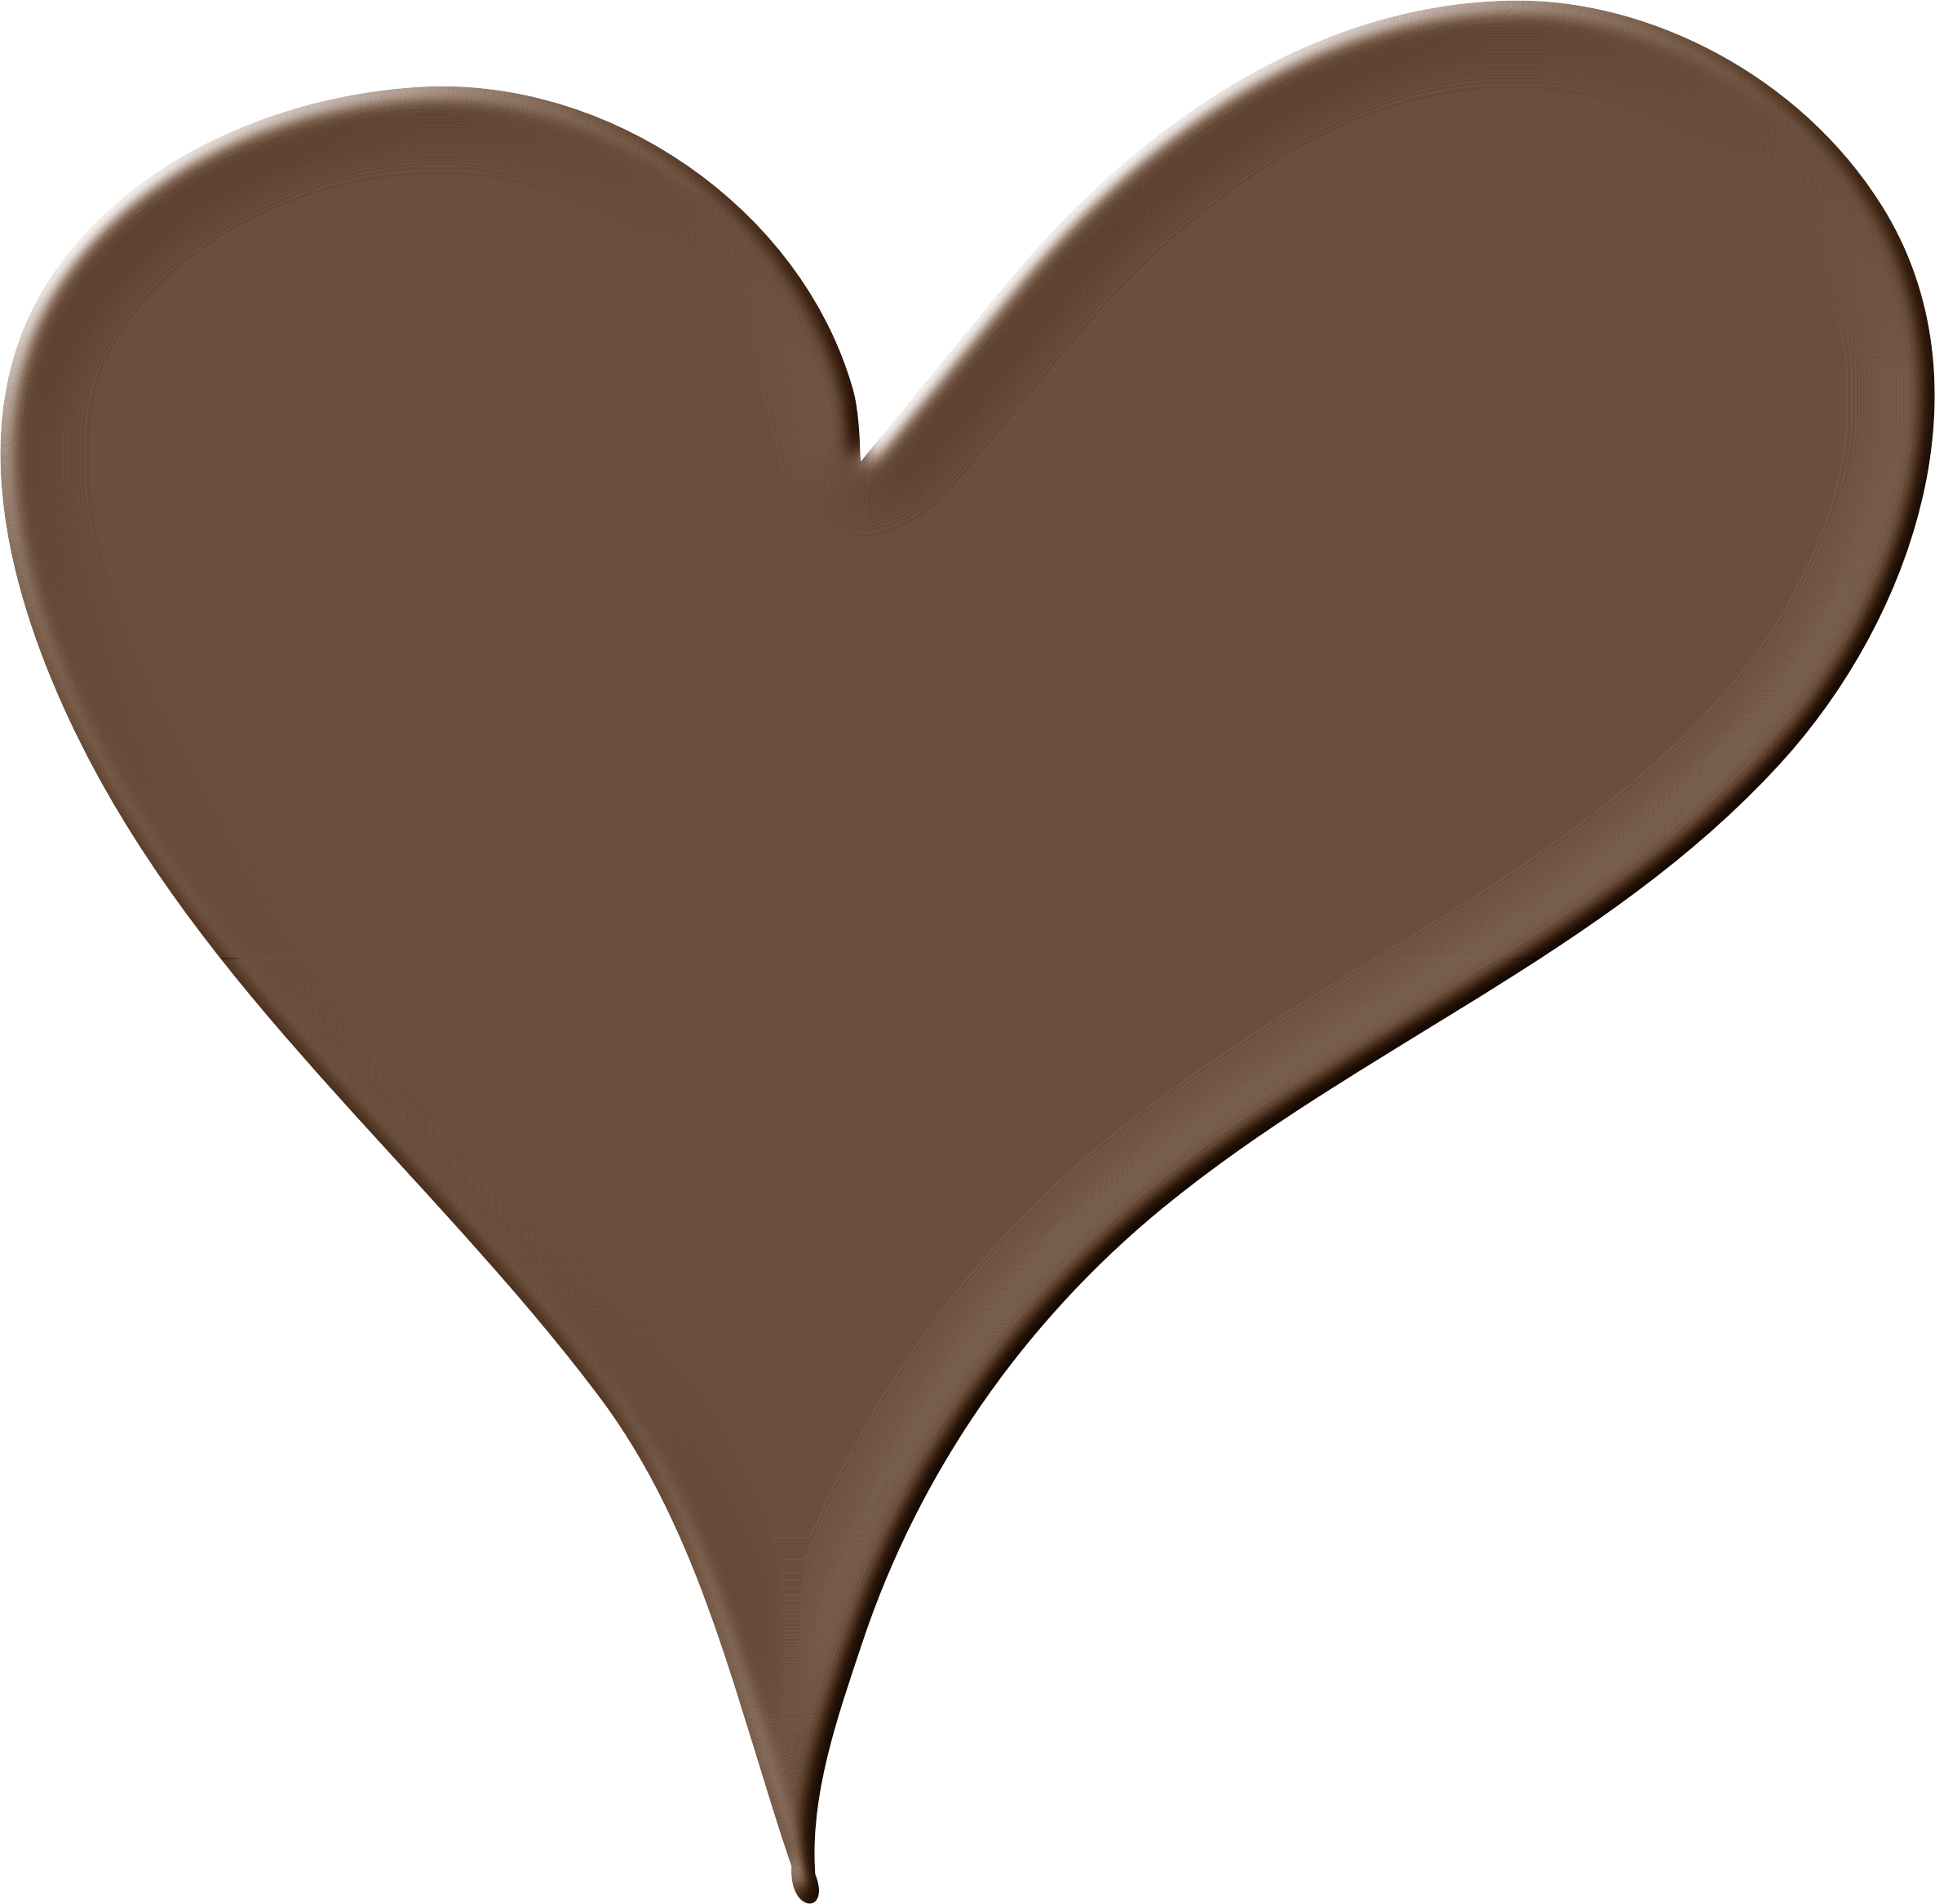 Chocolate Heart by AdamStanislav